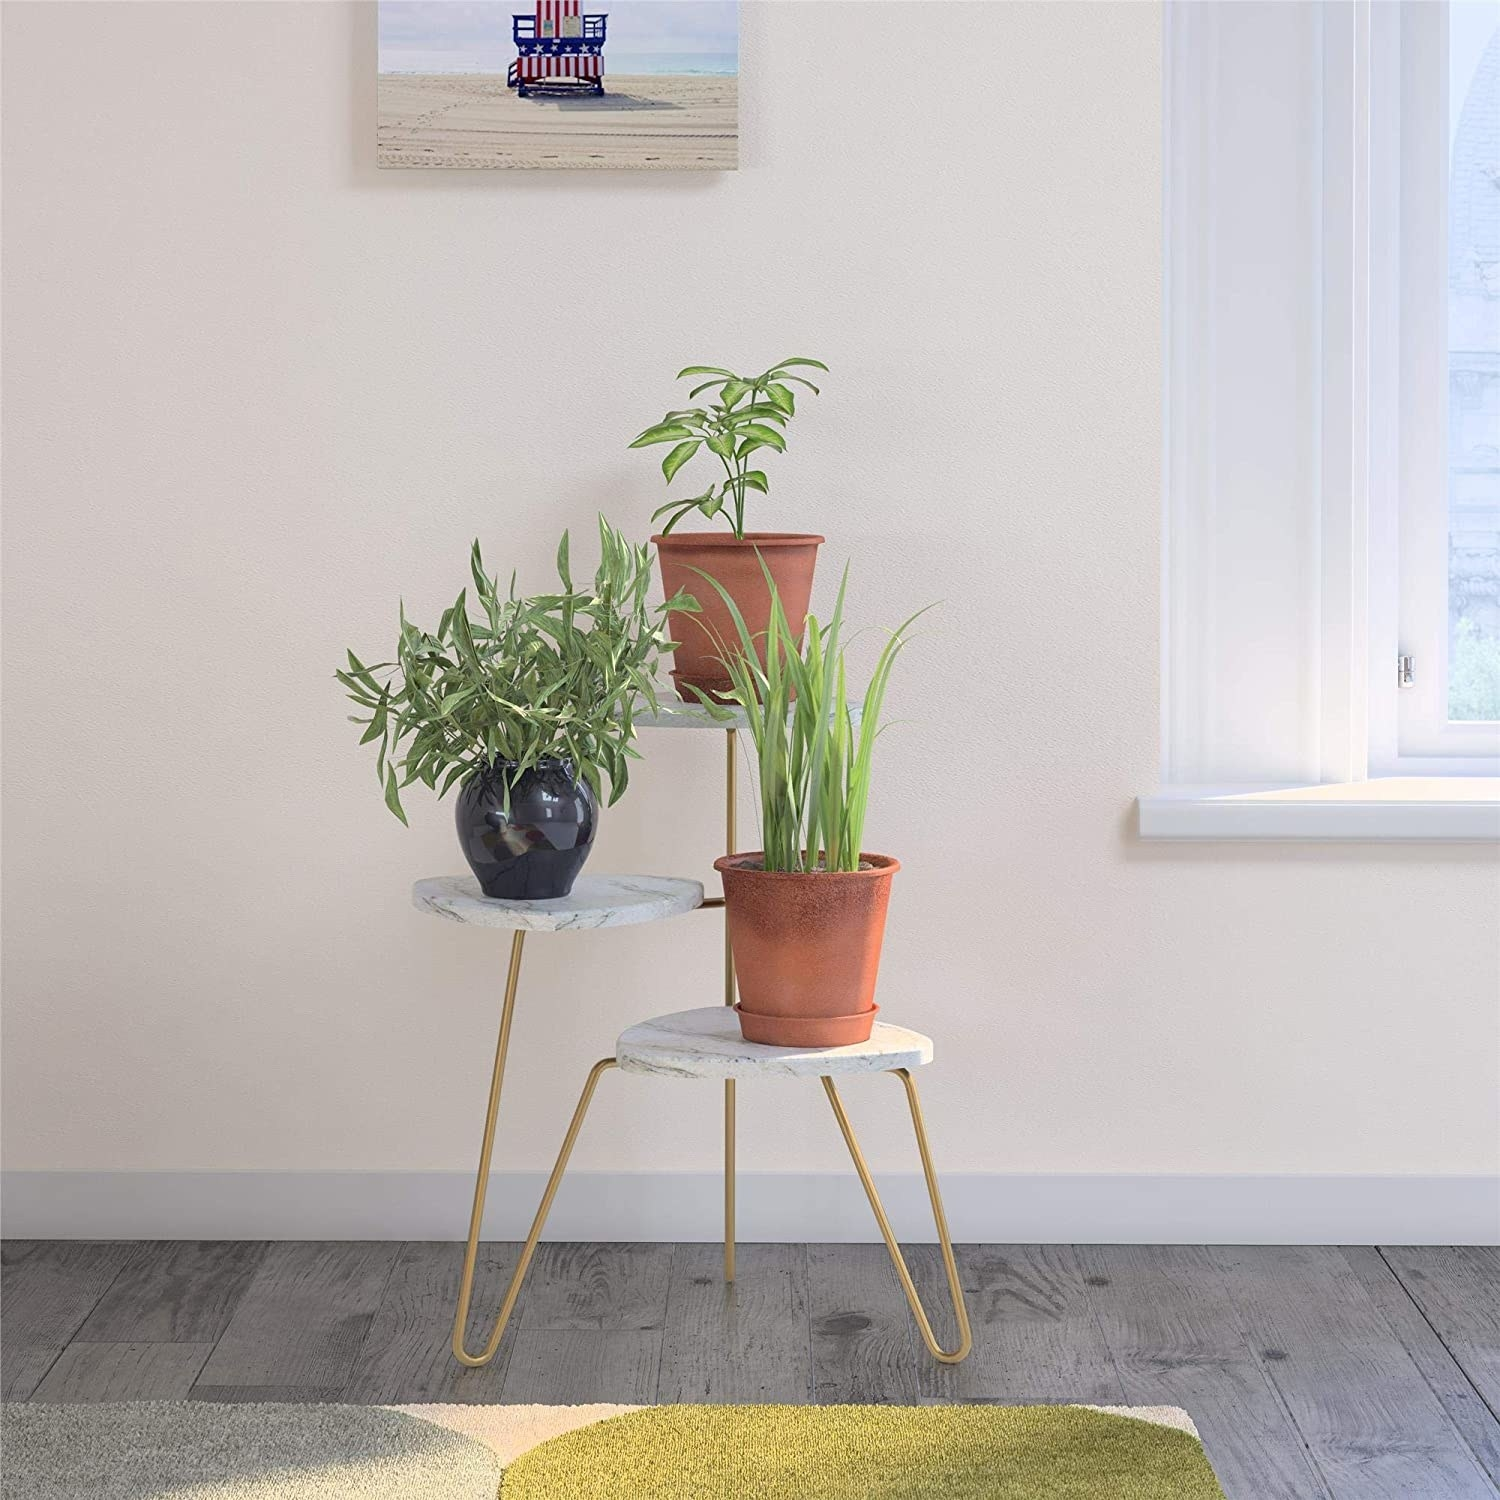 The three-tier plant stand